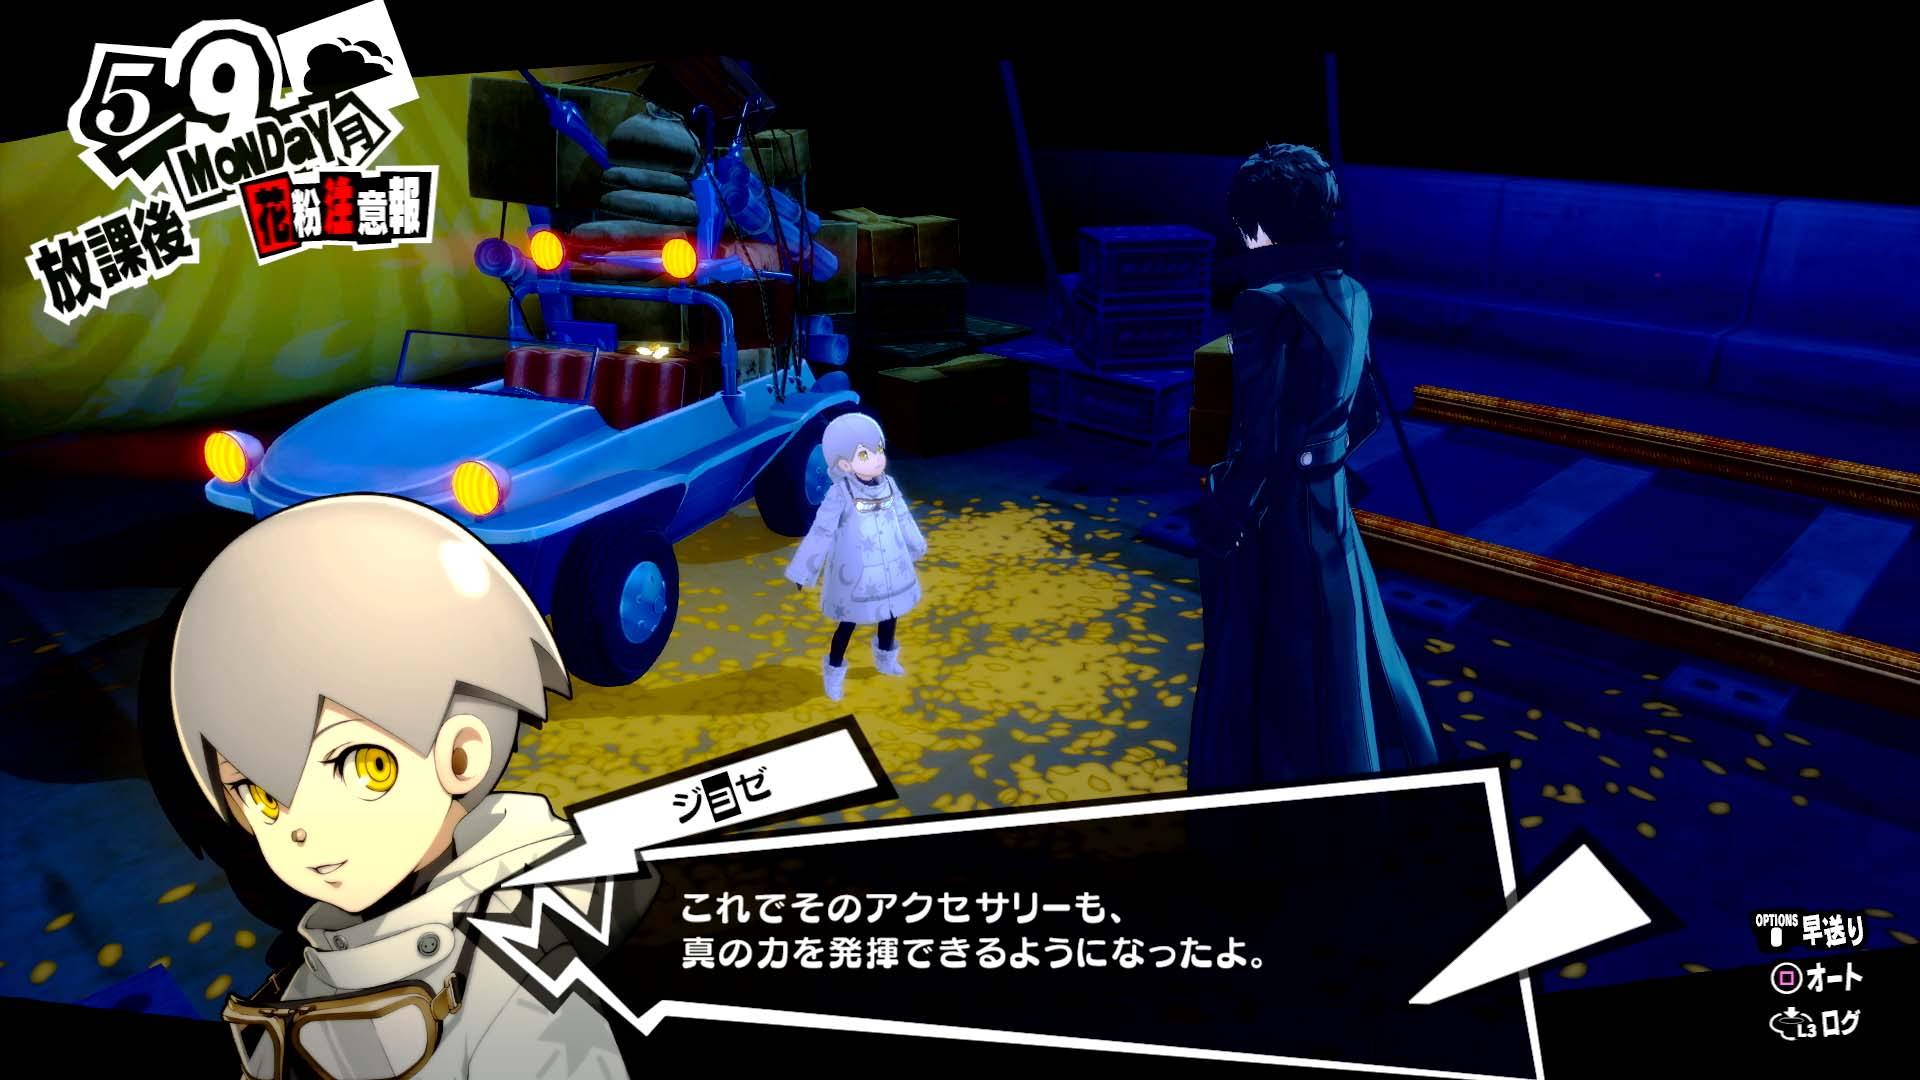 Atlus reiterates that there are